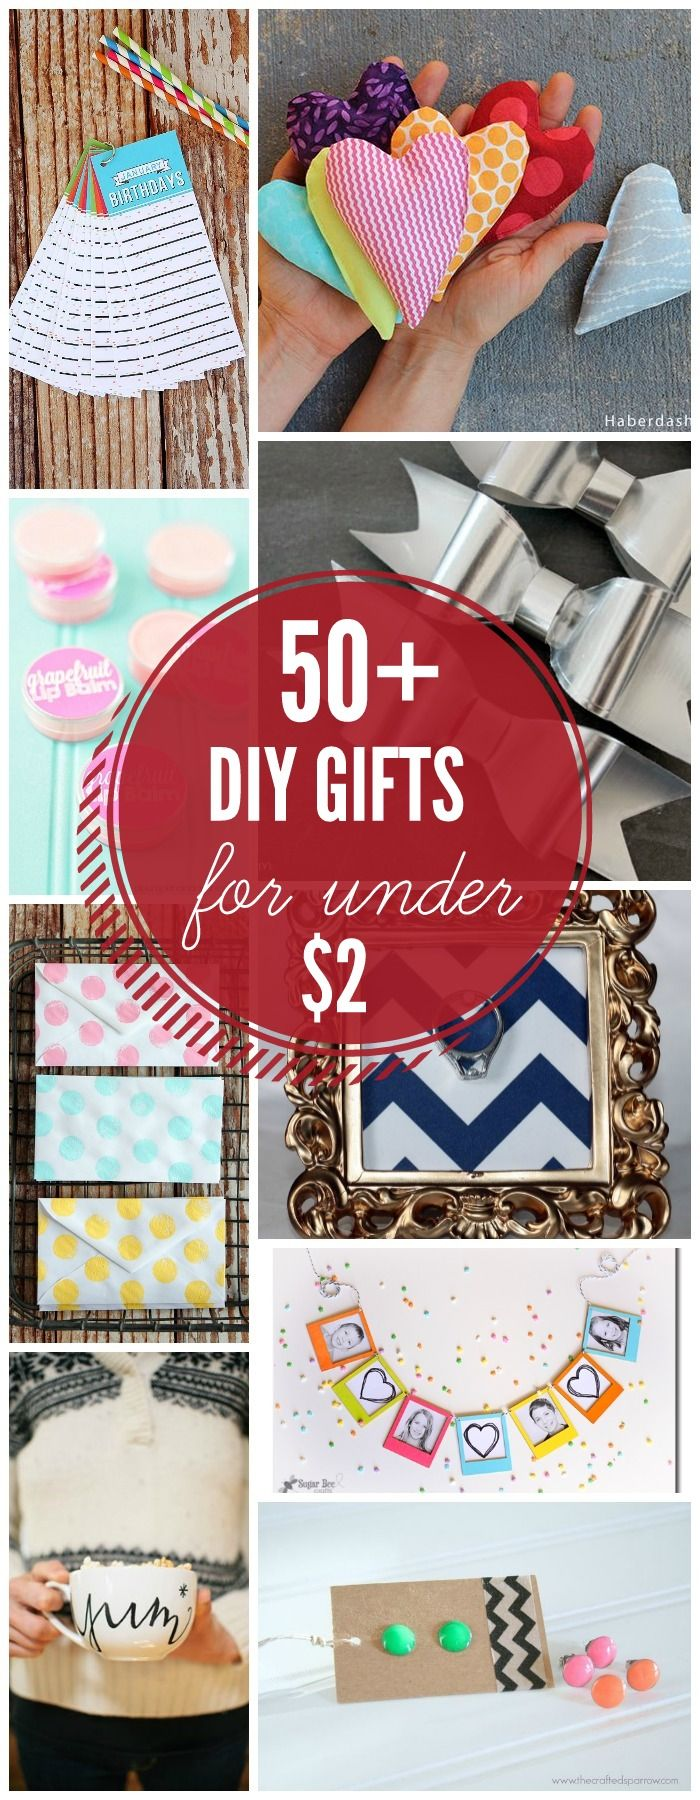 Inexpensive Gift Ideas Diy Gifts Homemade Christmas Gifts Homemade Gifts